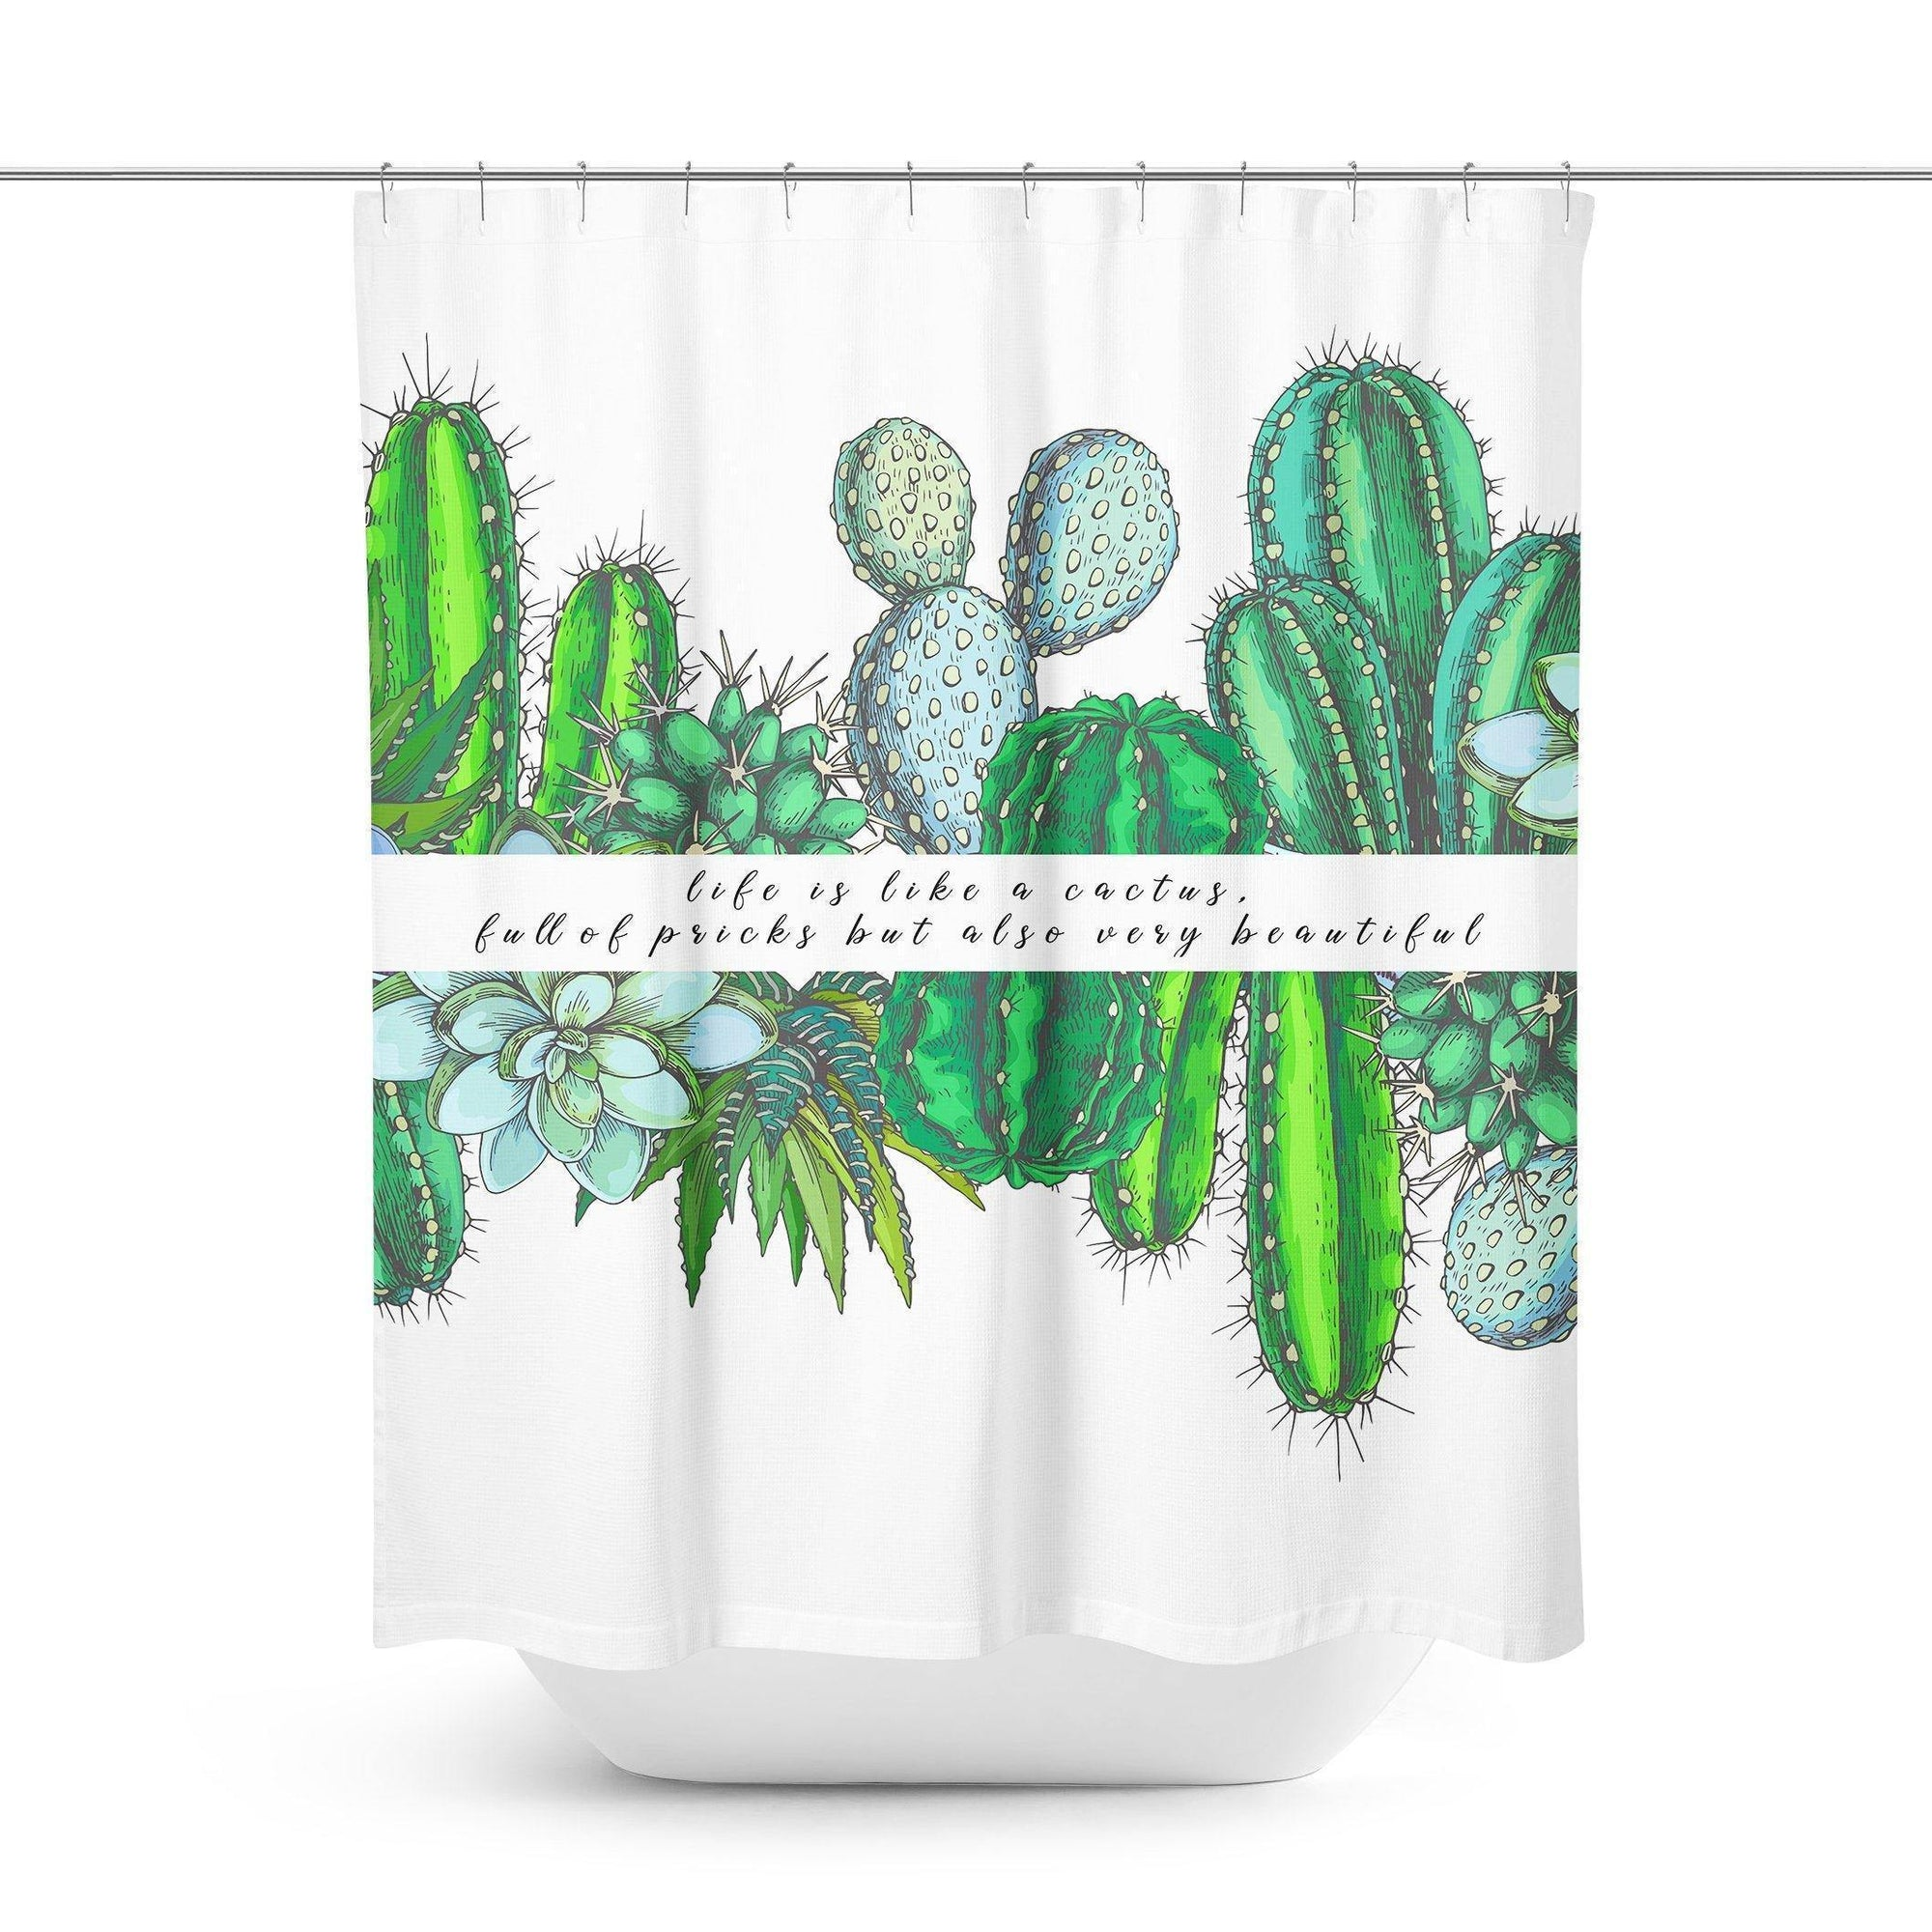 Cactus Quote Shower Curtain - Shower Curtains - W.FRANCIS